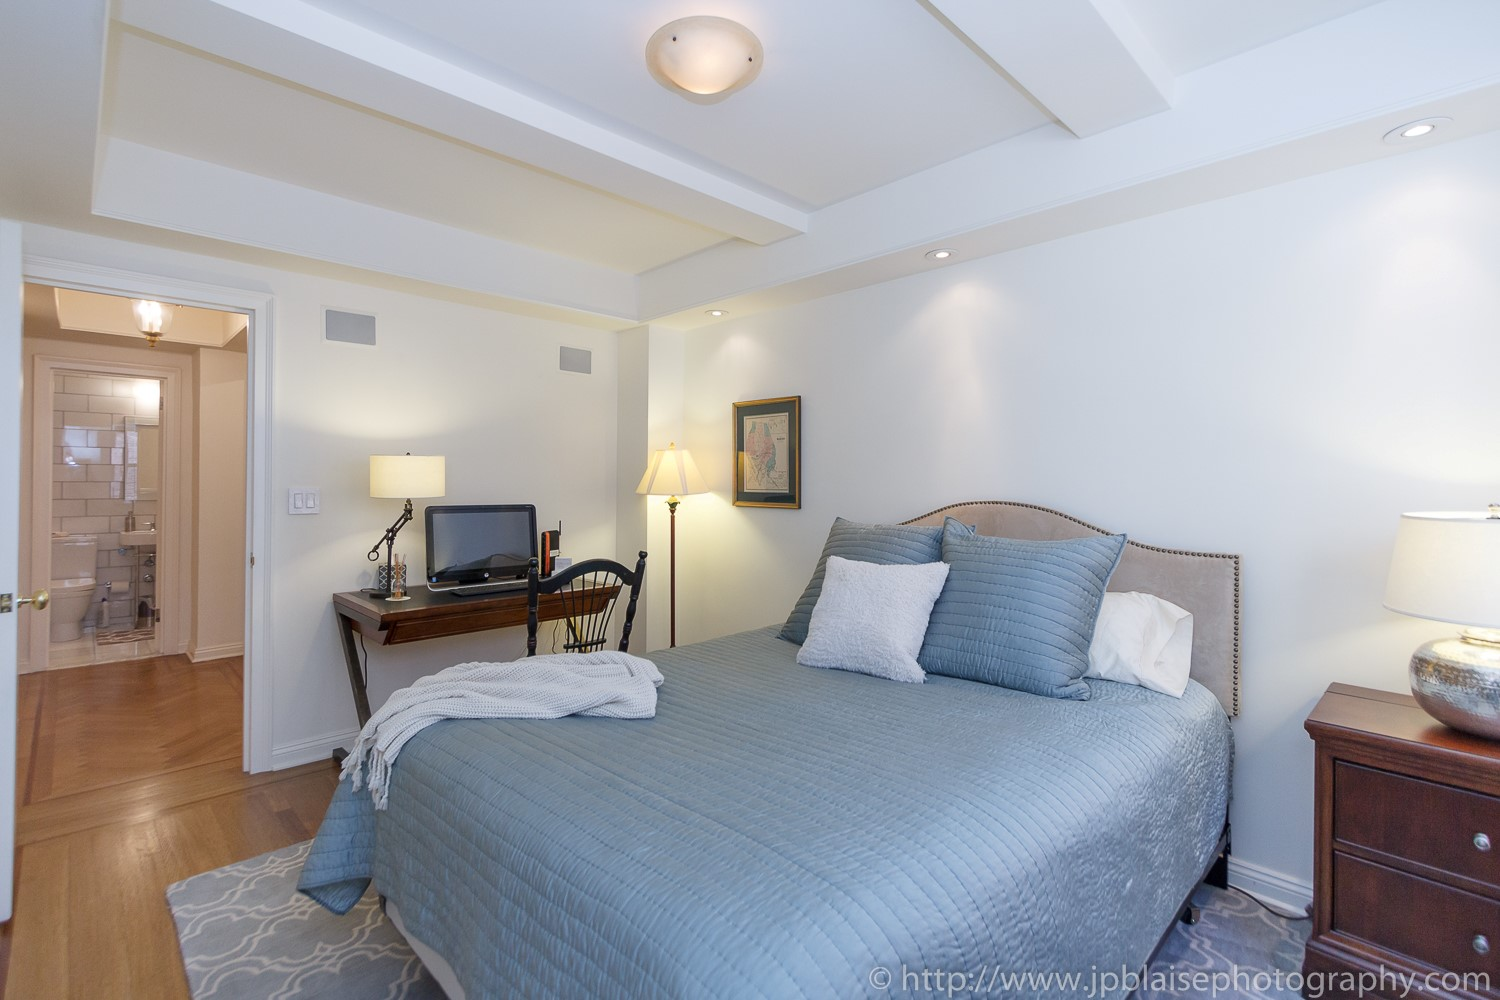 Latest NYC Interior Photography Work Two Bedroom Apartment For Sale In Murra